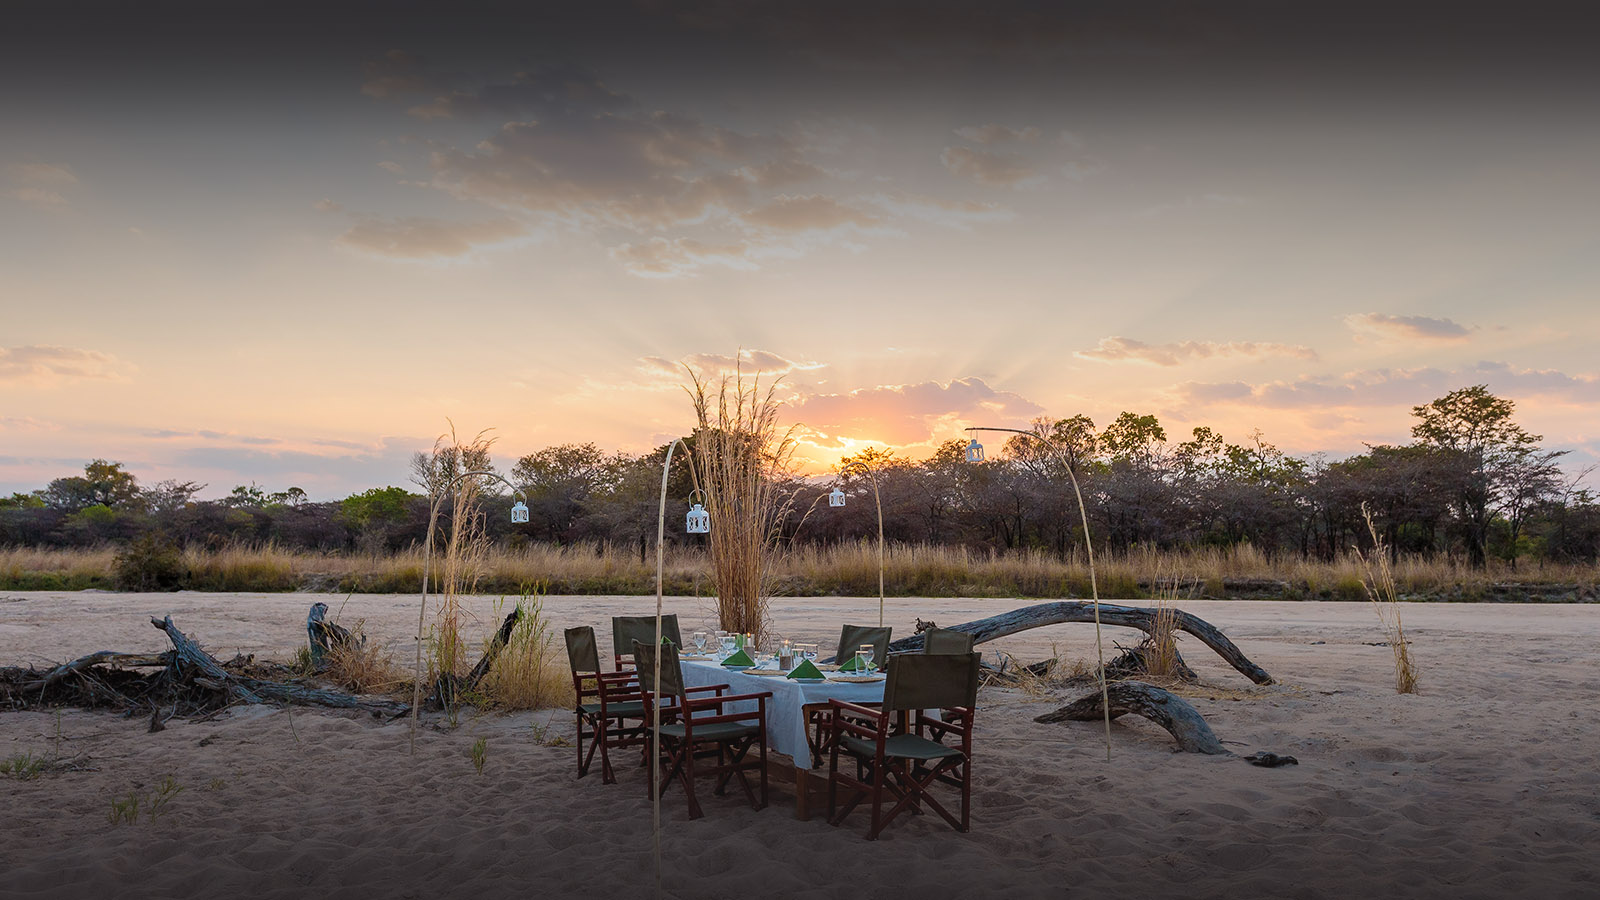 nkonzi-camp-lodge-zambia-in-style-safari-packages-lodges-explore-south-luangwa-national-park-milky-way-dinner